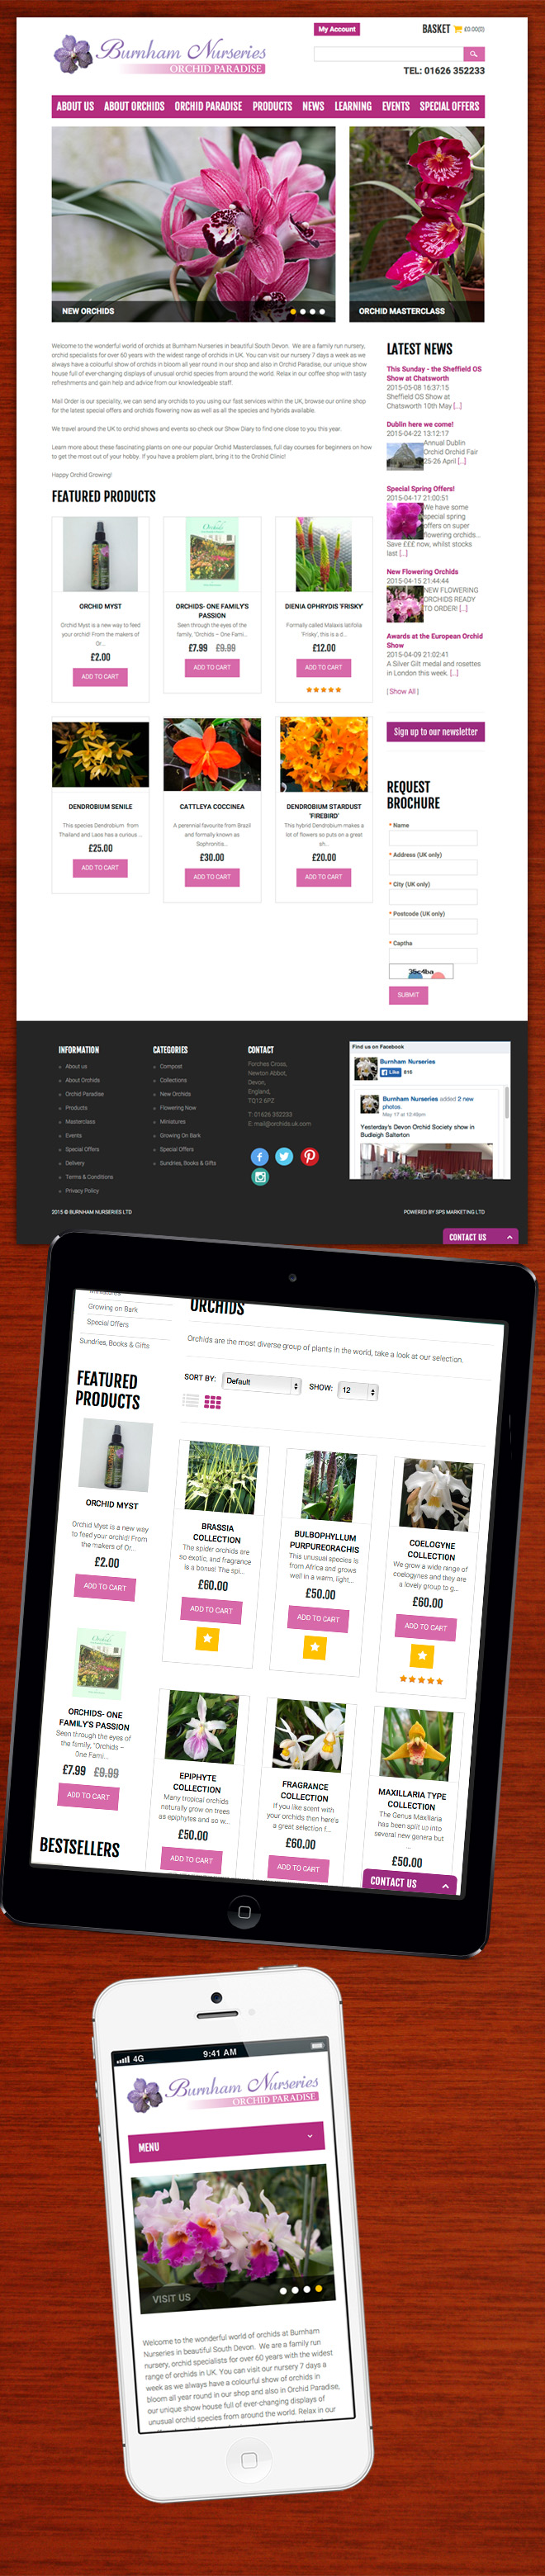 Burnham Nurseries Website Design